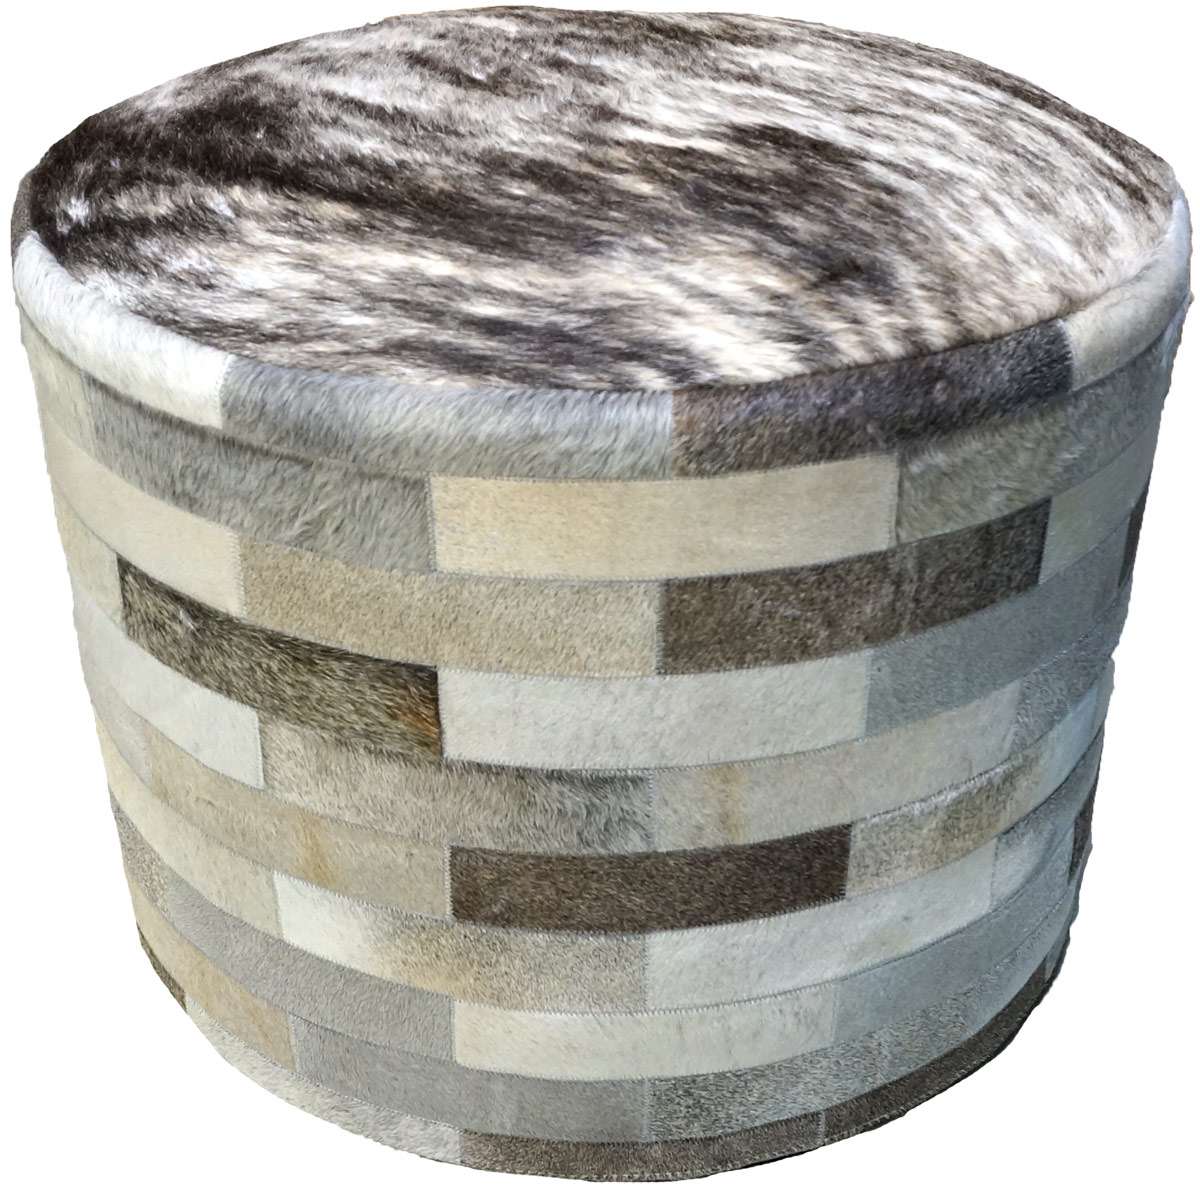 Gray Round Cowhide Ottoman - 24 Inch